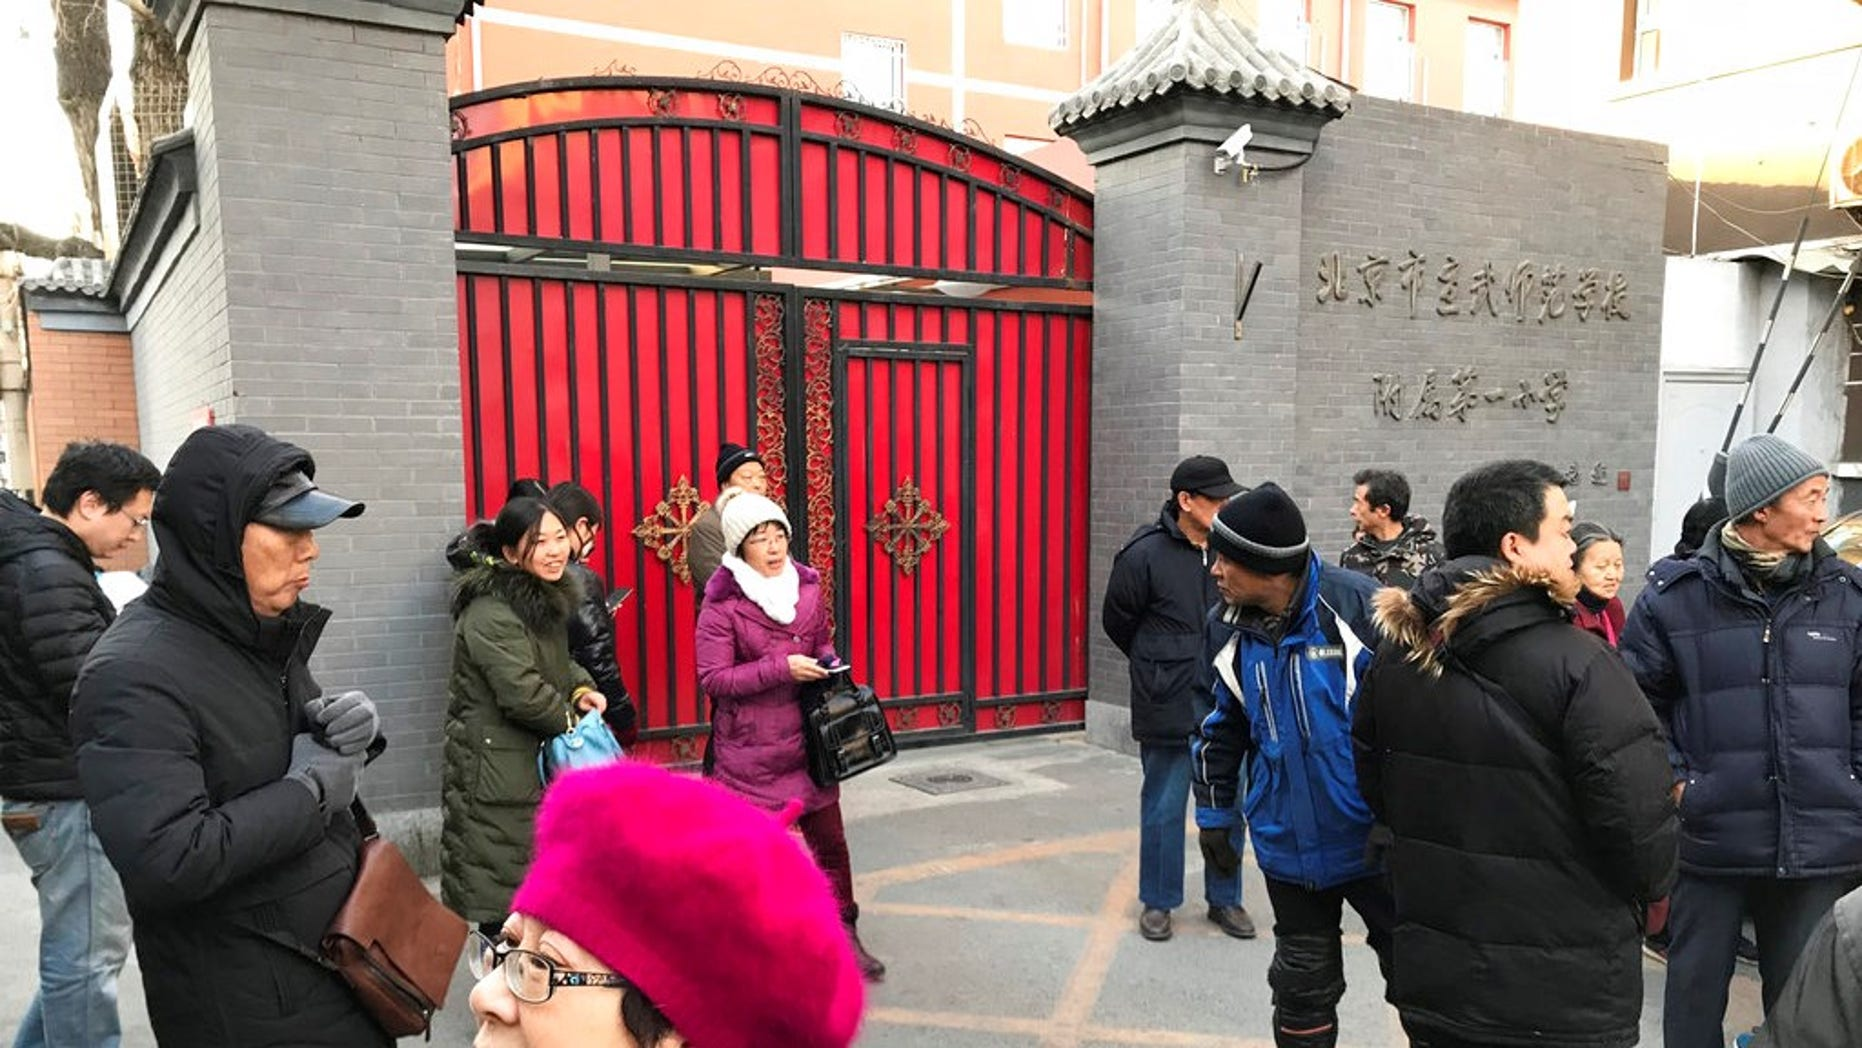 Parents gather at an entrance gate to the Beijing No. 1 Affiliated Elementary School of Xuanwu Normal School following an attack in Beijing, China, Tuesday, Jan. 8, 2019.